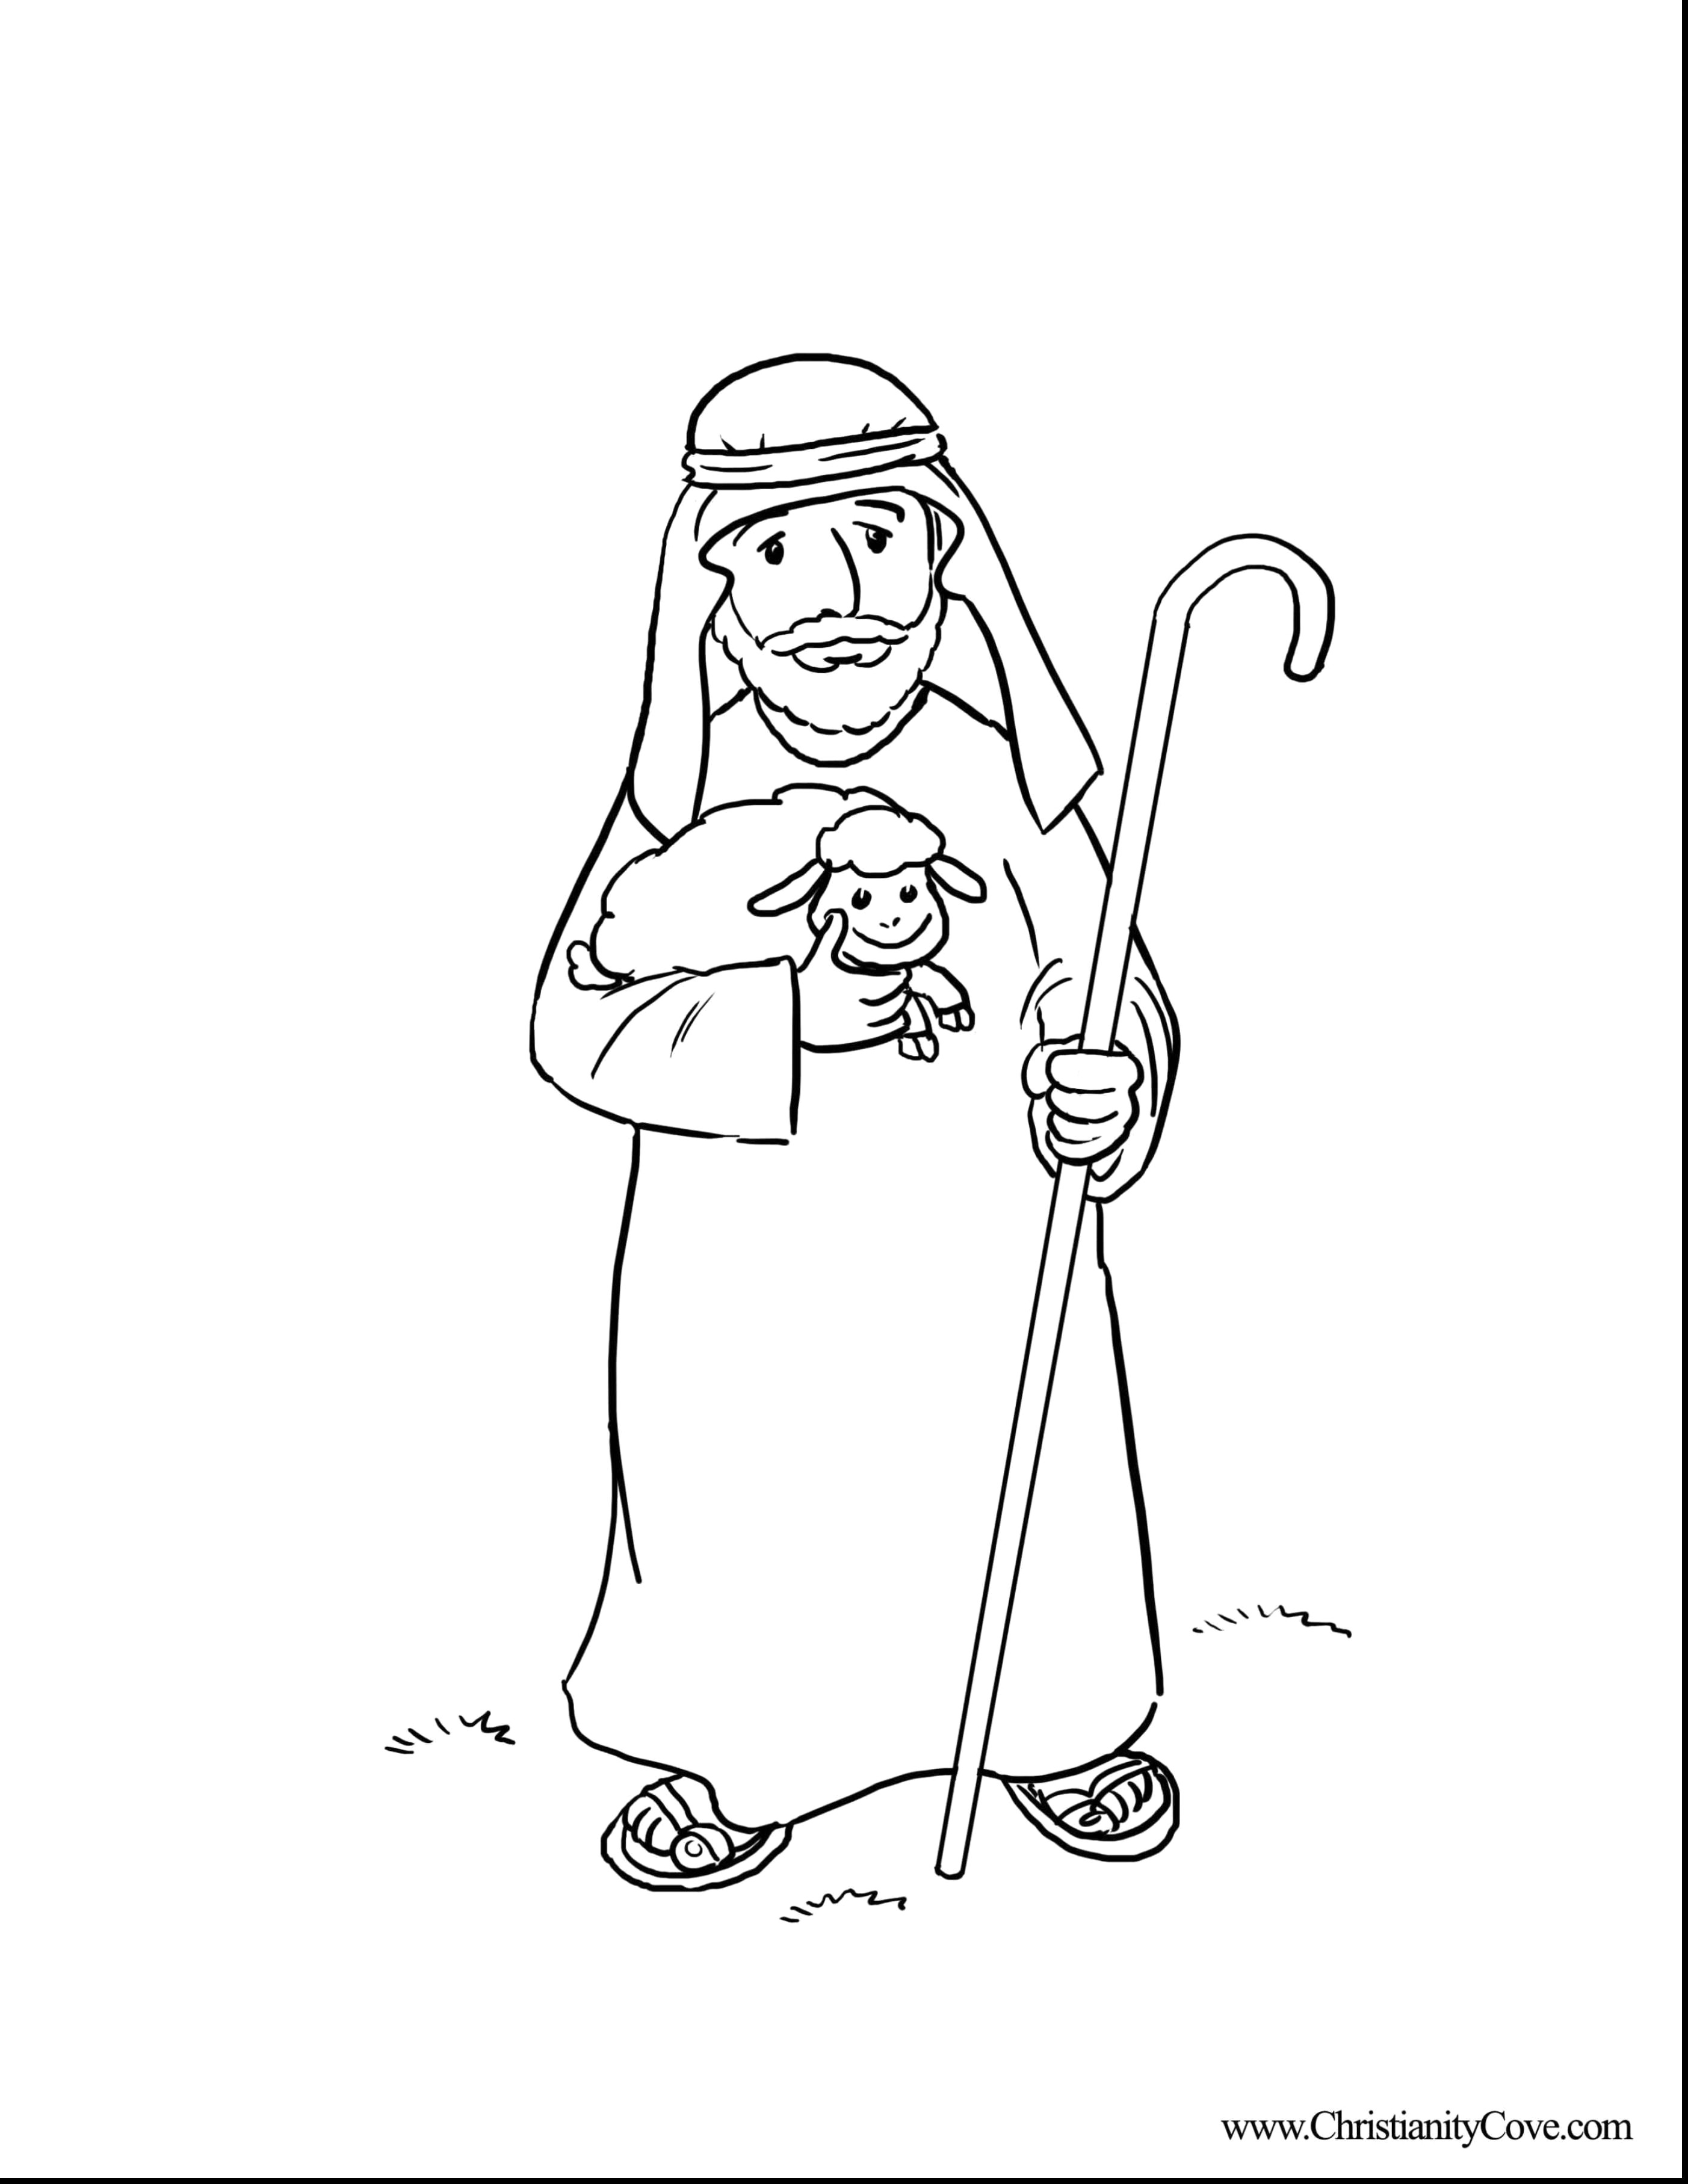 Christmas Coloring Pages Shepherds With Printable Page For Kids